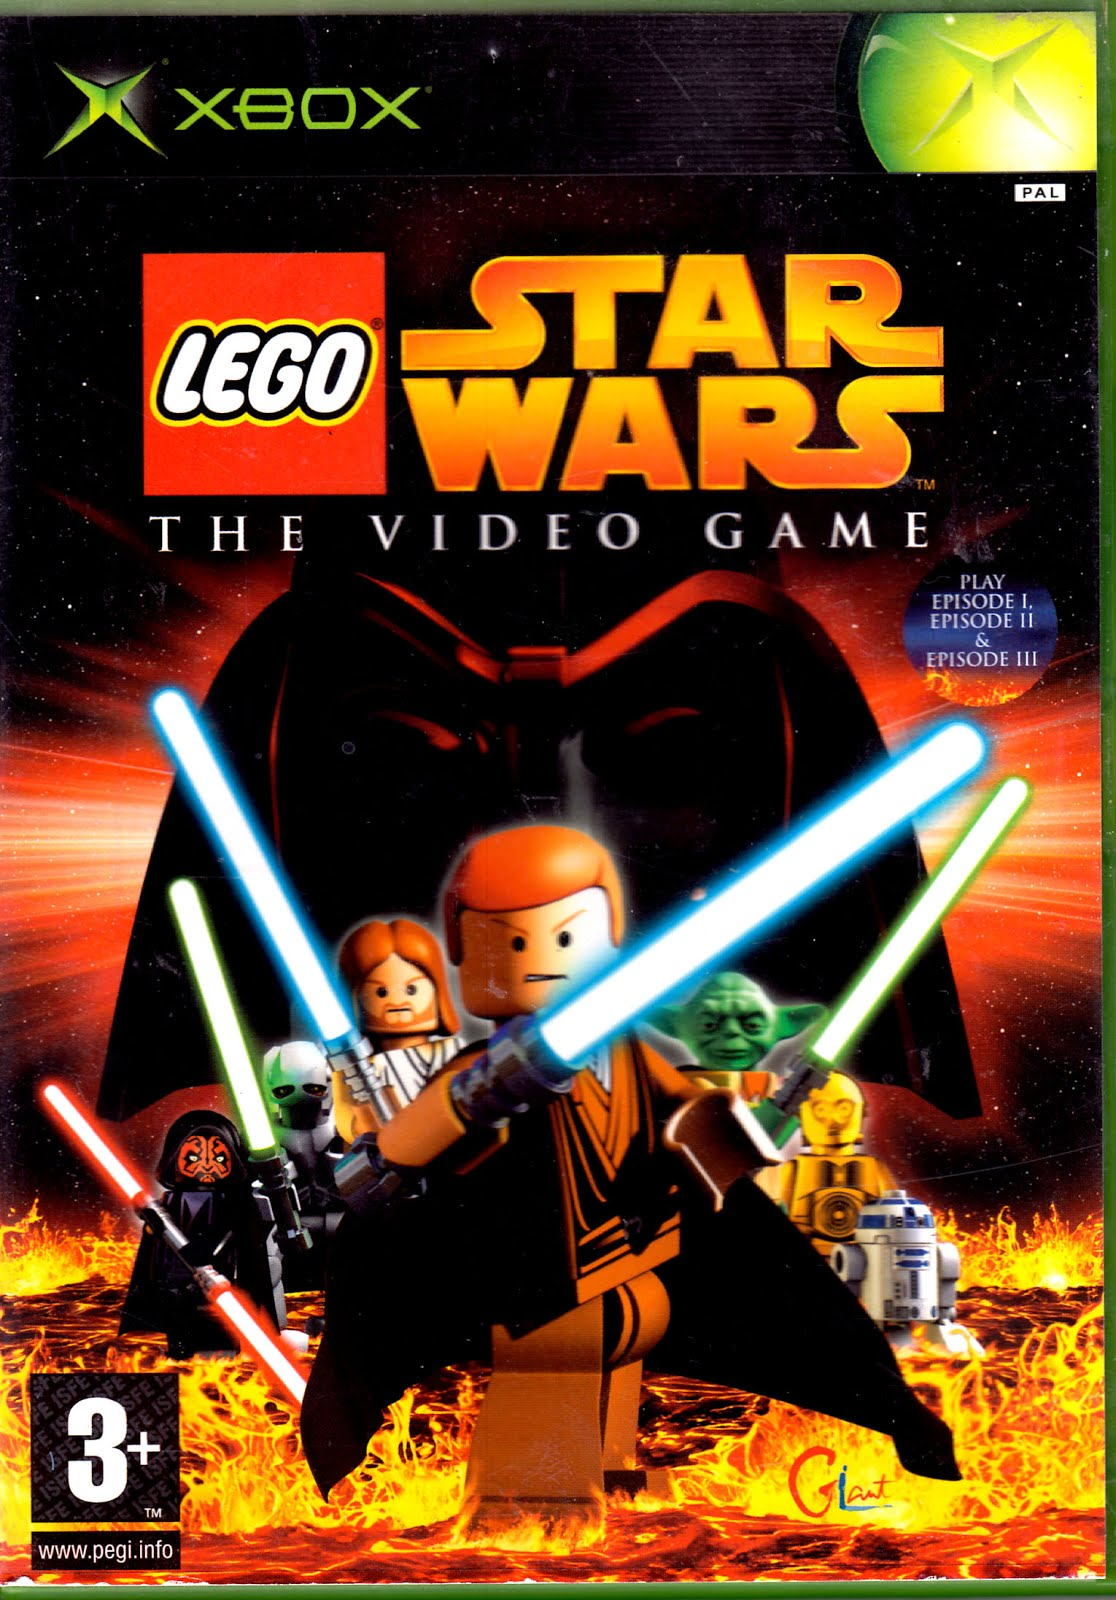 Xbox Clasico Iso S Por Mega Lego Star Wars The Video Game Mega